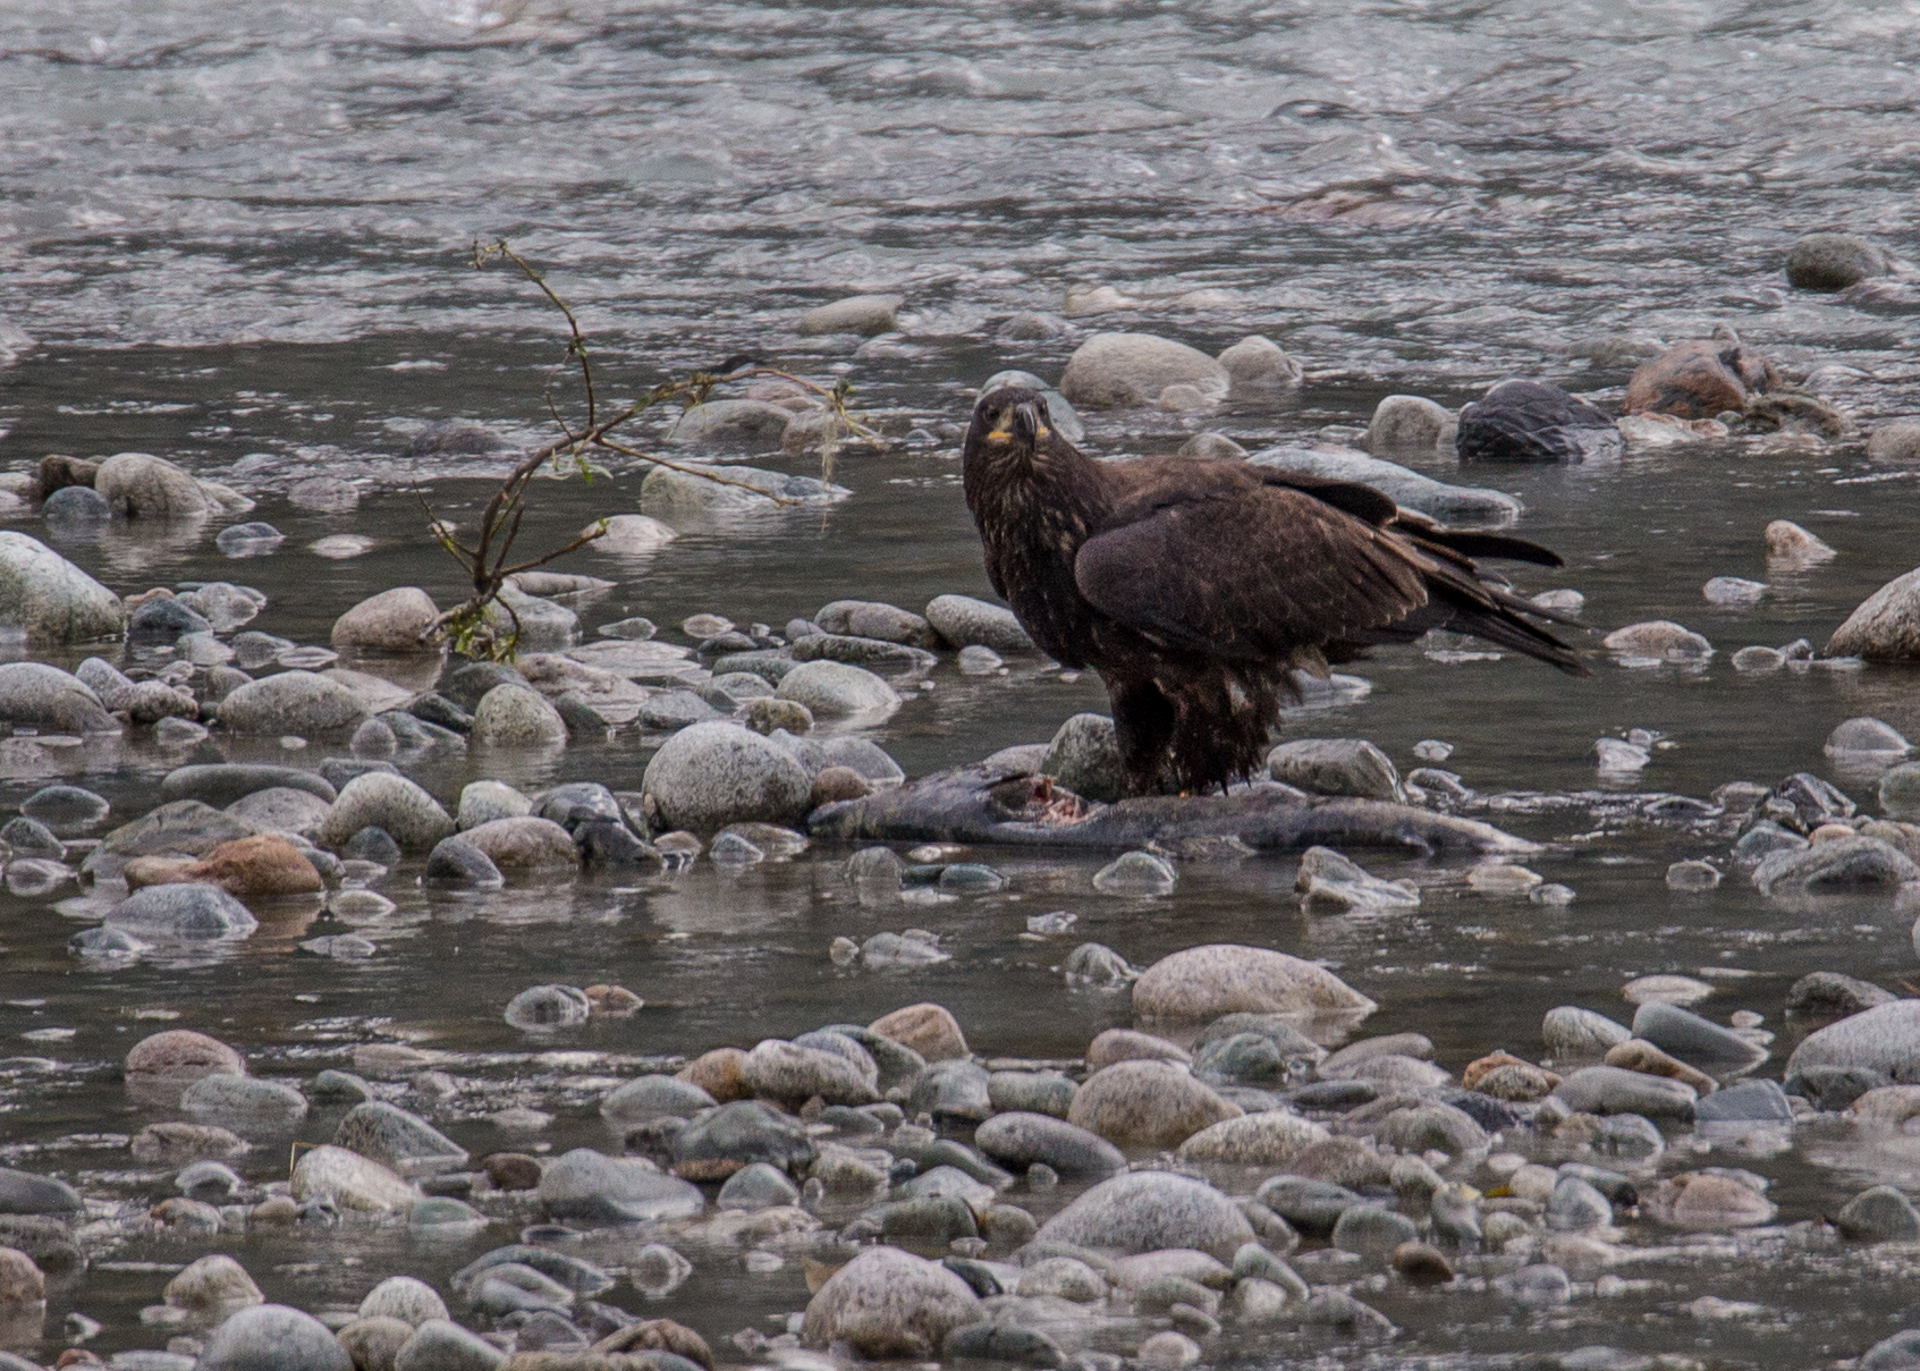 Golden Eagle with a salmon.